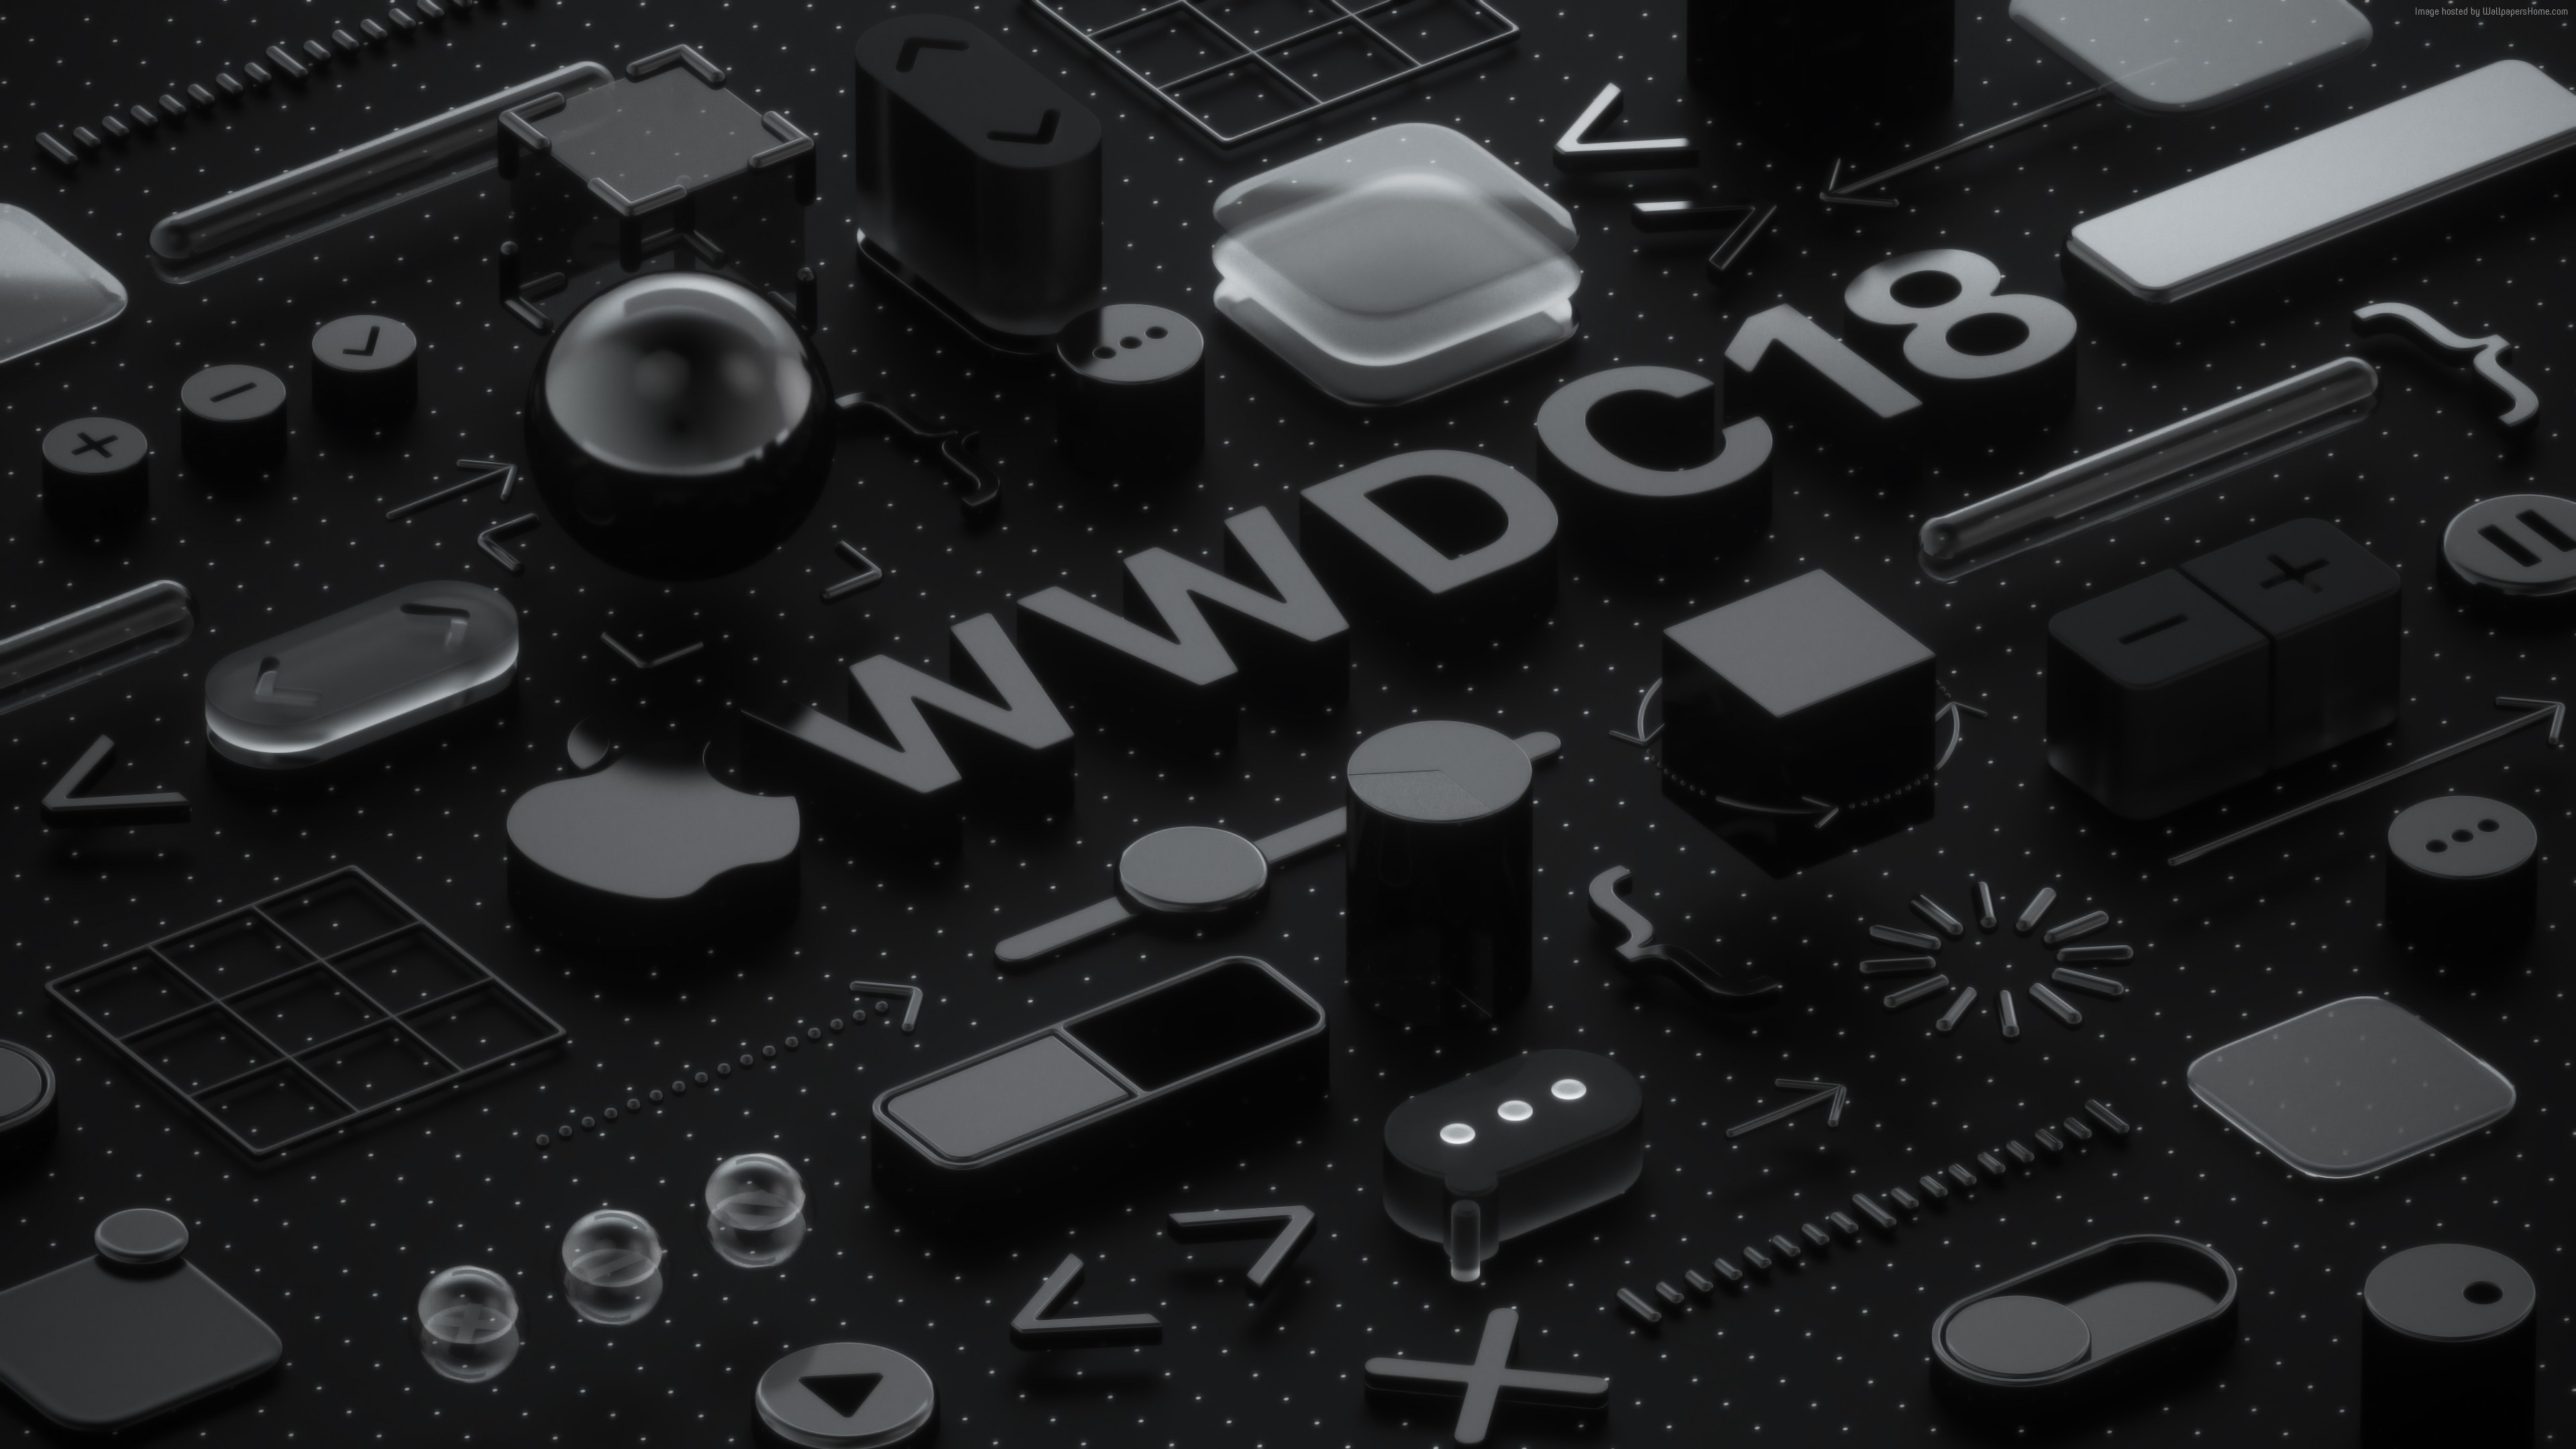 Wallpaper WWDC 2018, Black, 3D, 4K, OS